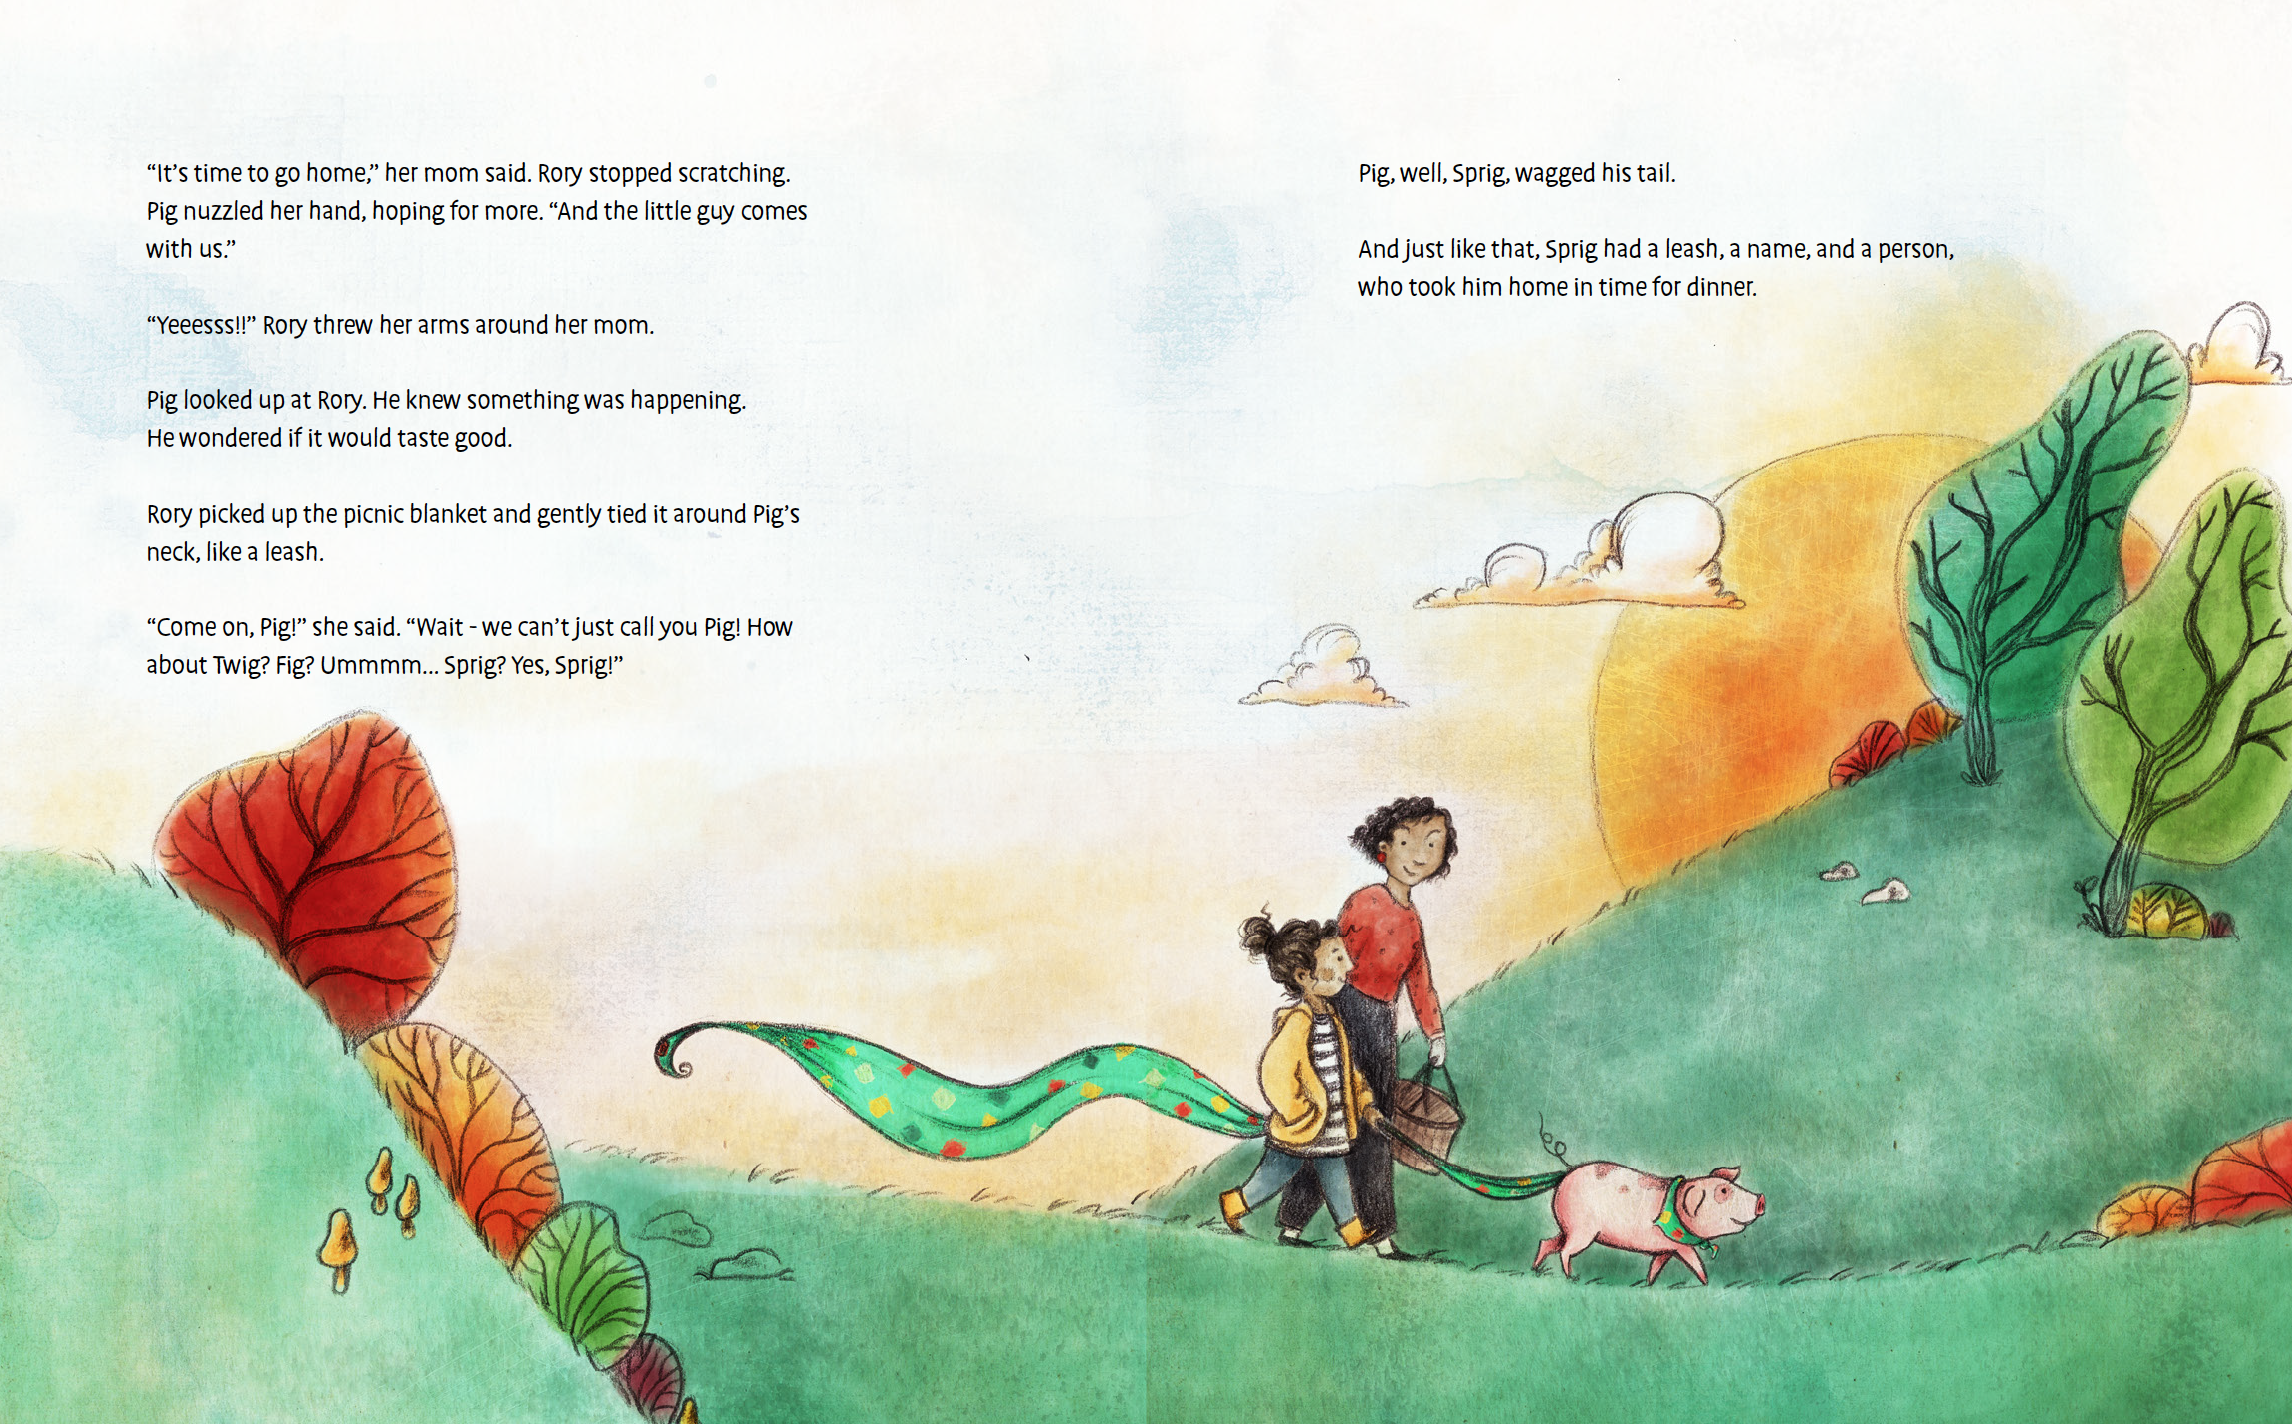 Sprig escapes from a delivery truck and is found by a girl named Rory, who takes him home with her. Source:   Sprig the Rescue Pig  , published by Stone Pier Press